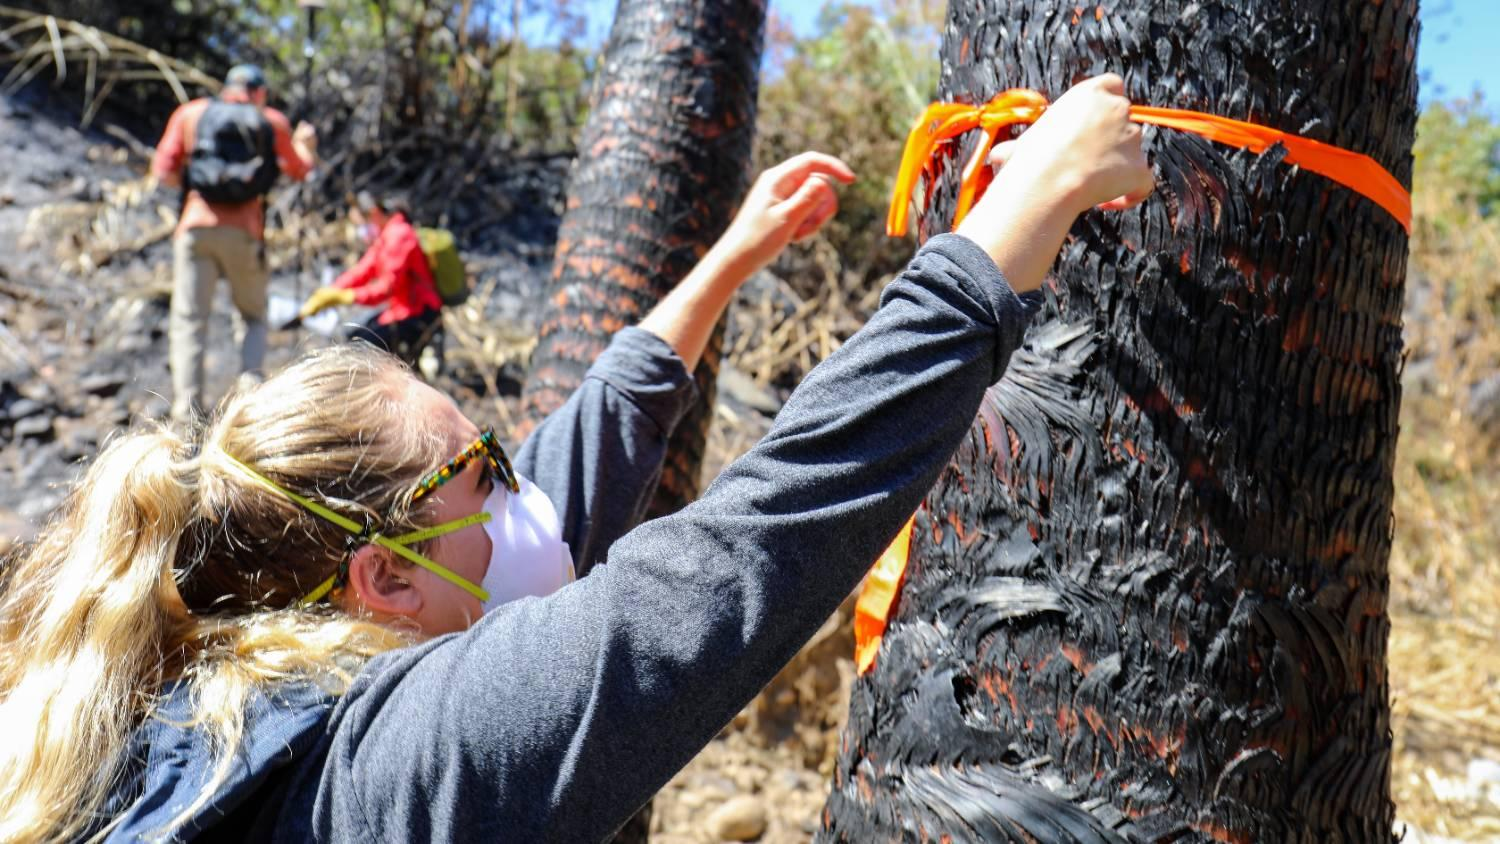 Student checking burnt tree,